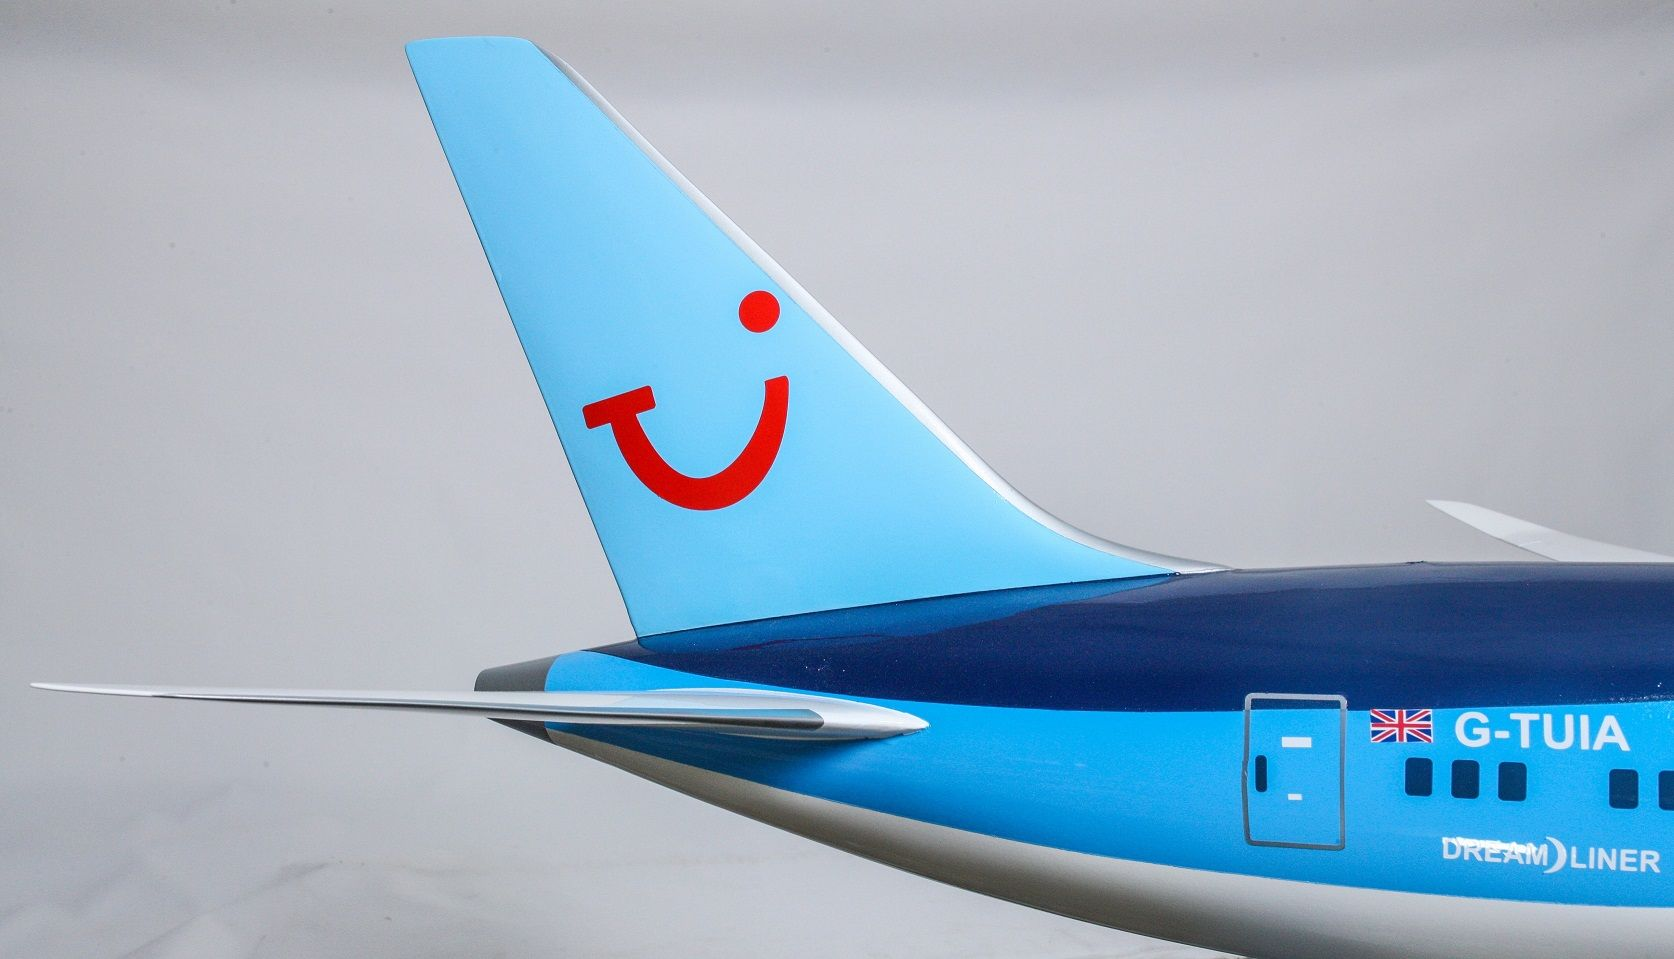 1525-9140-Boeing-787-800-Thomson-Airways-Model-Plane